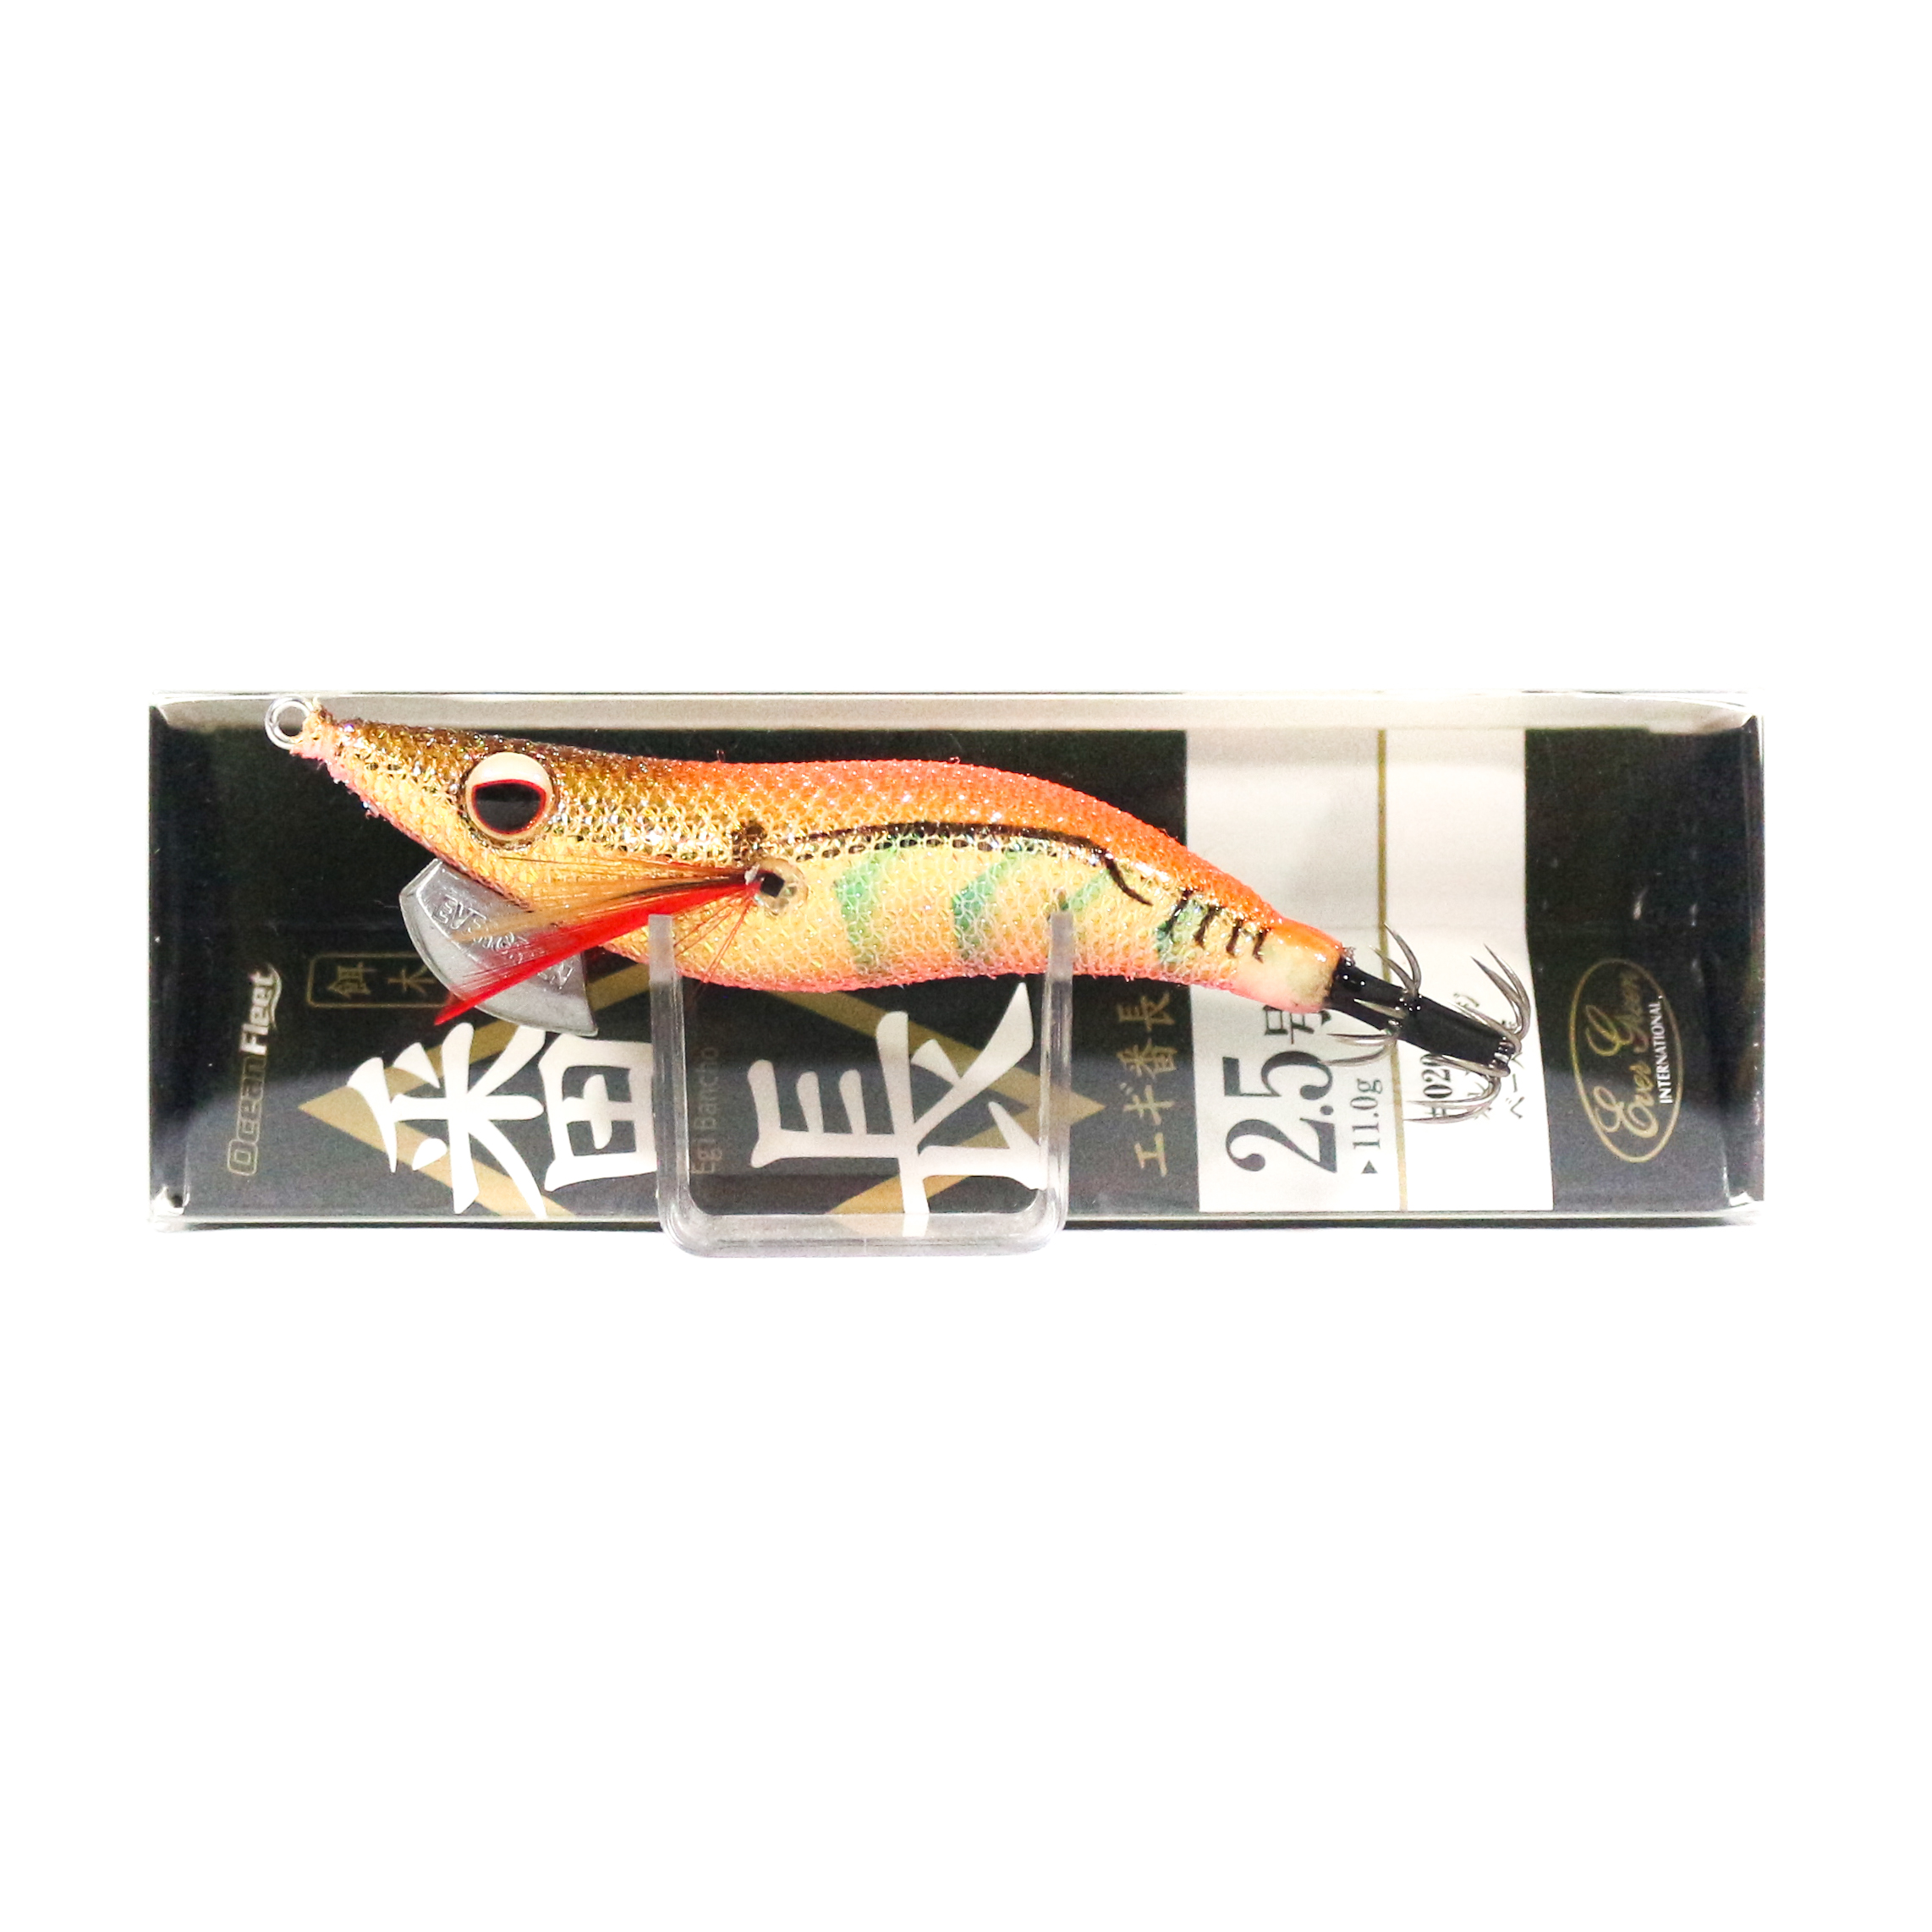 Evergreen Ocean Fleet Custom Squid Jig Lure 2.5 0206G (9353)